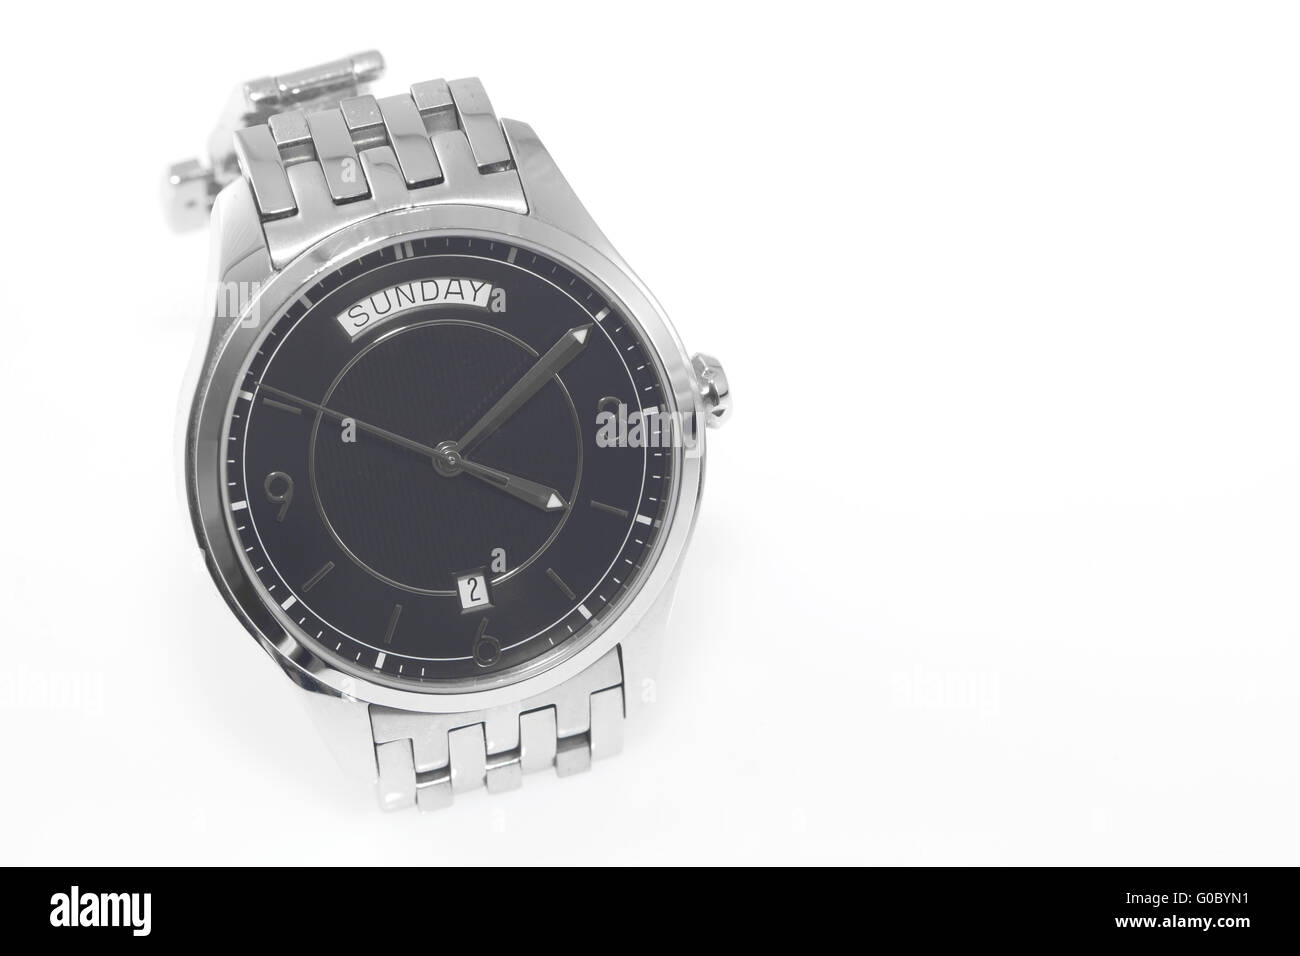 Watch - Stock Image